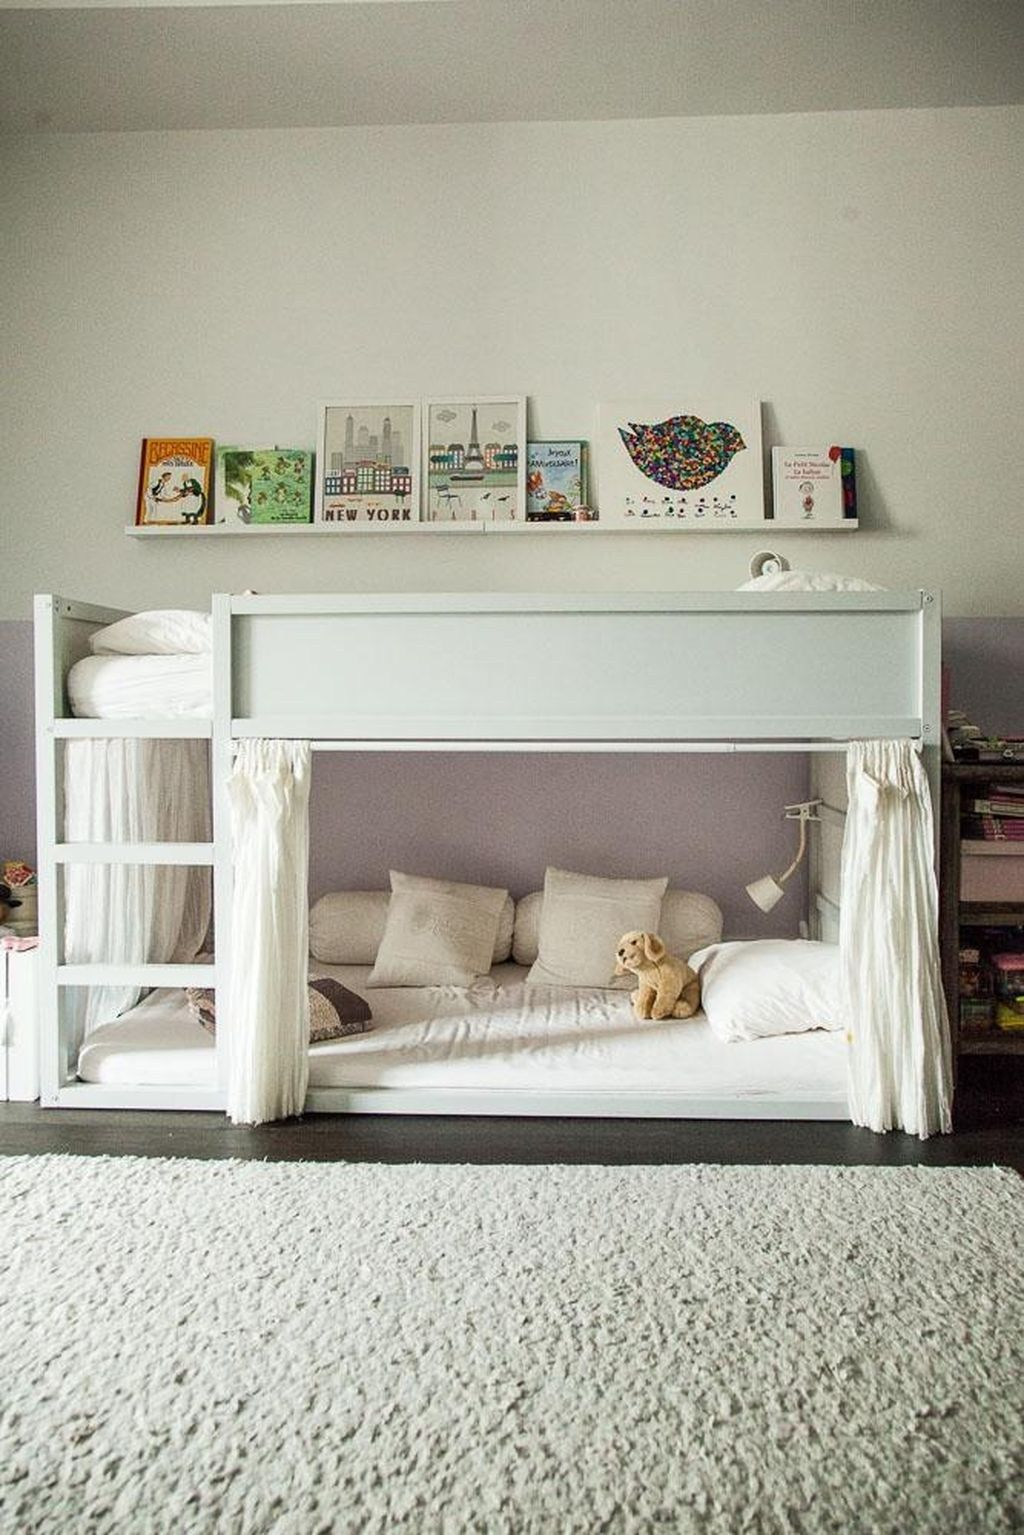 cool ikea kura beds ideas for your kids room34 ikea loft on wonderful ideas of bunk beds for your kids bedroom id=11329